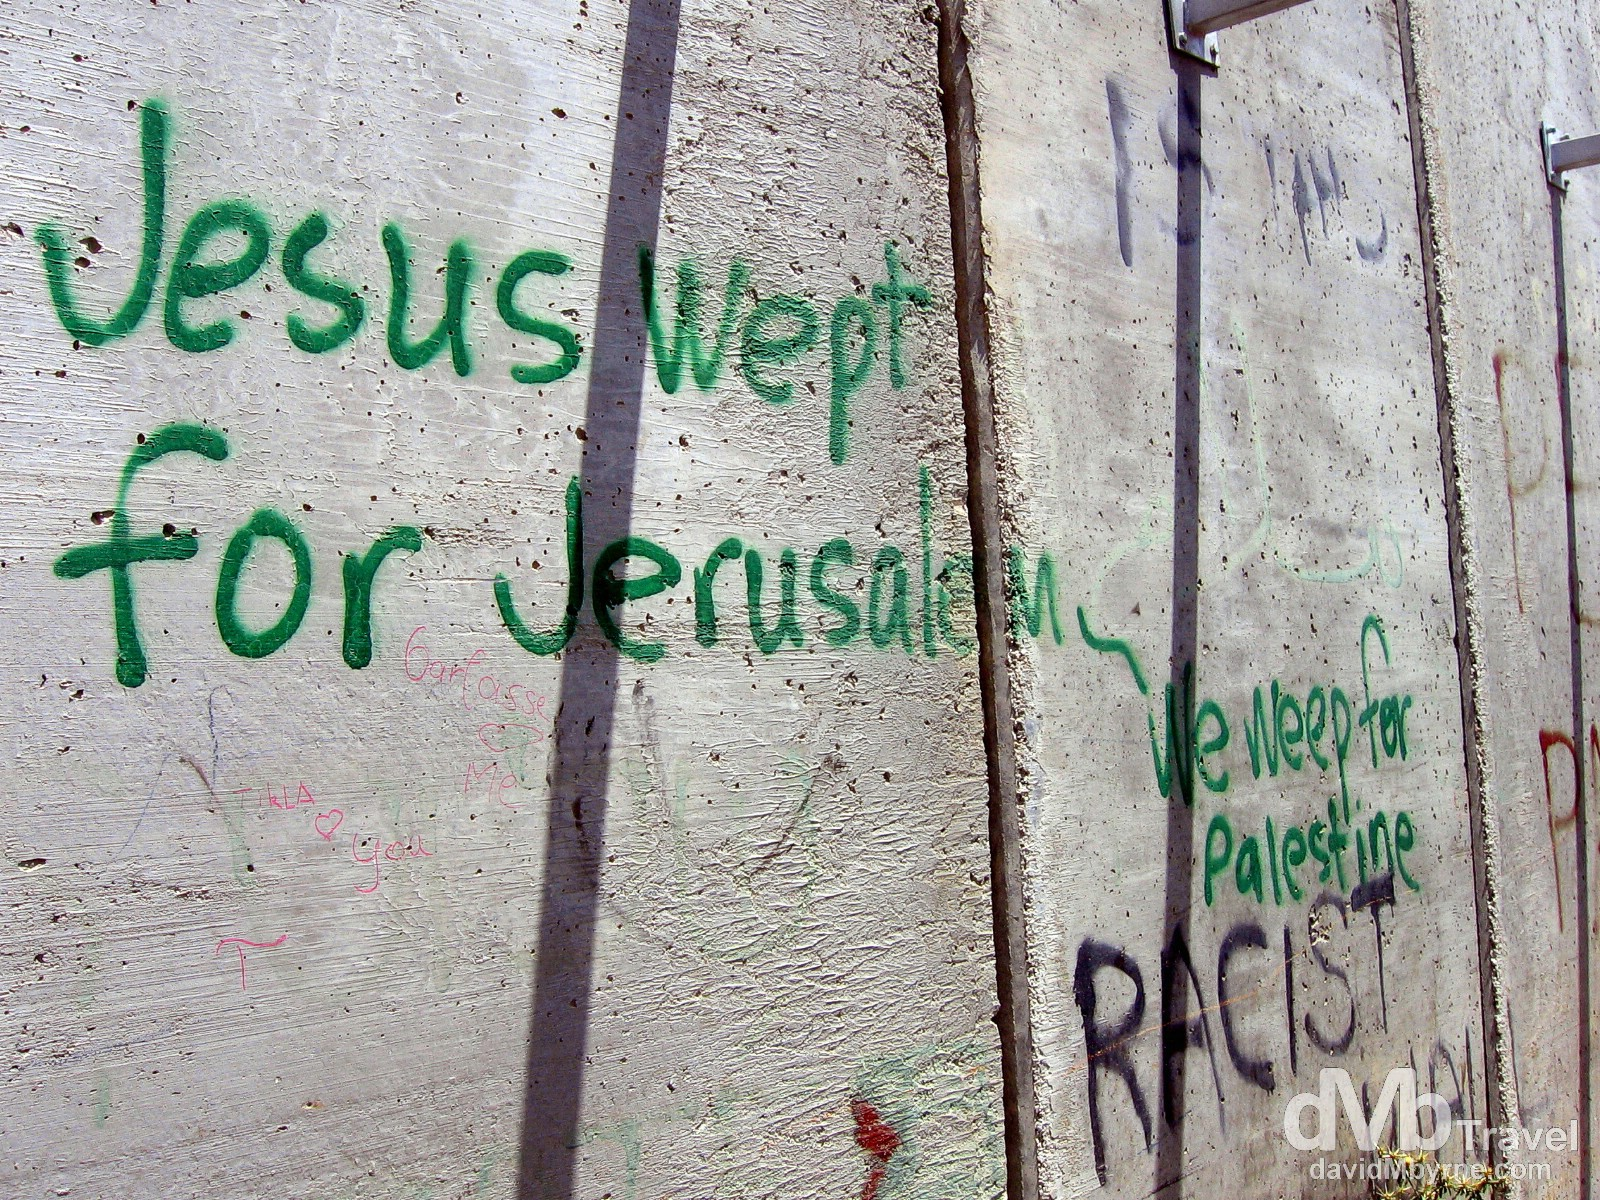 Jesus wept for Jerusalem. A section of the heavily guarded wall separating the Palestinian West Back from Israel. May 2, 2008.